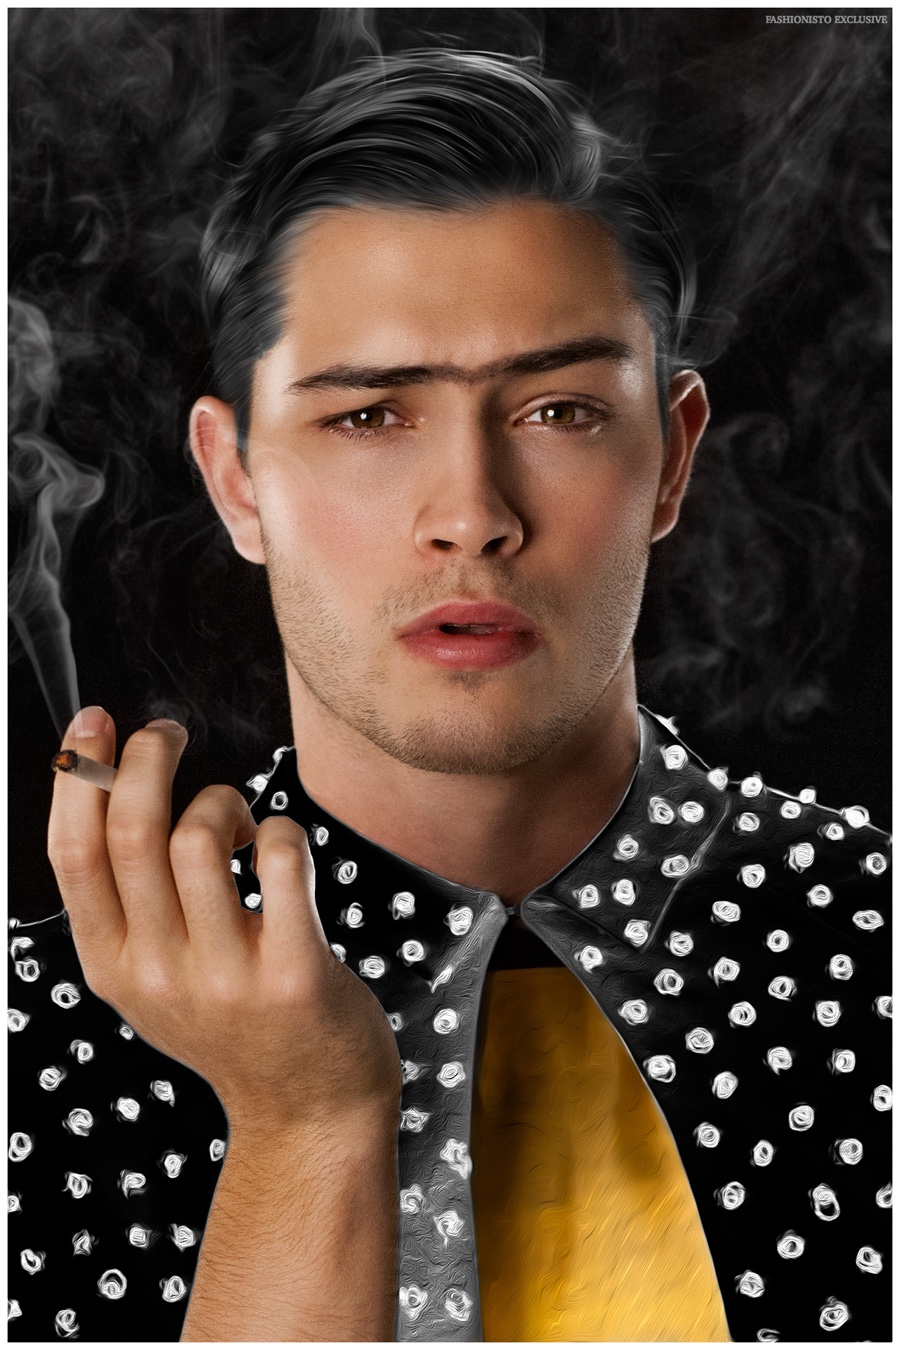 fashionisto-exclusive-francisco-lachowski-002